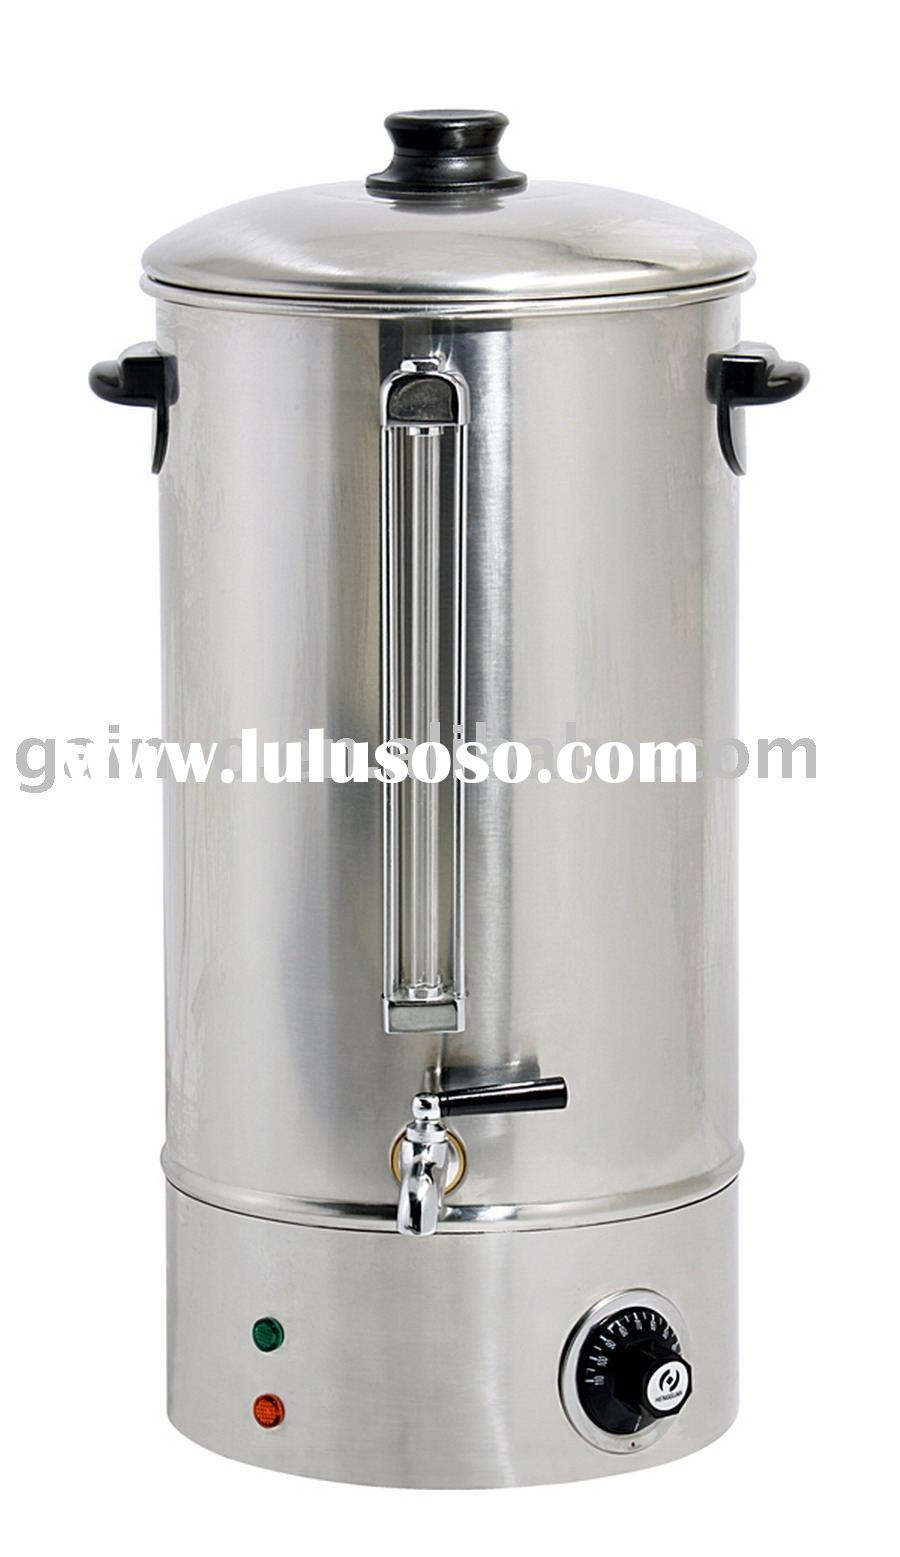 BWS-10 stainless steel electric water boiler